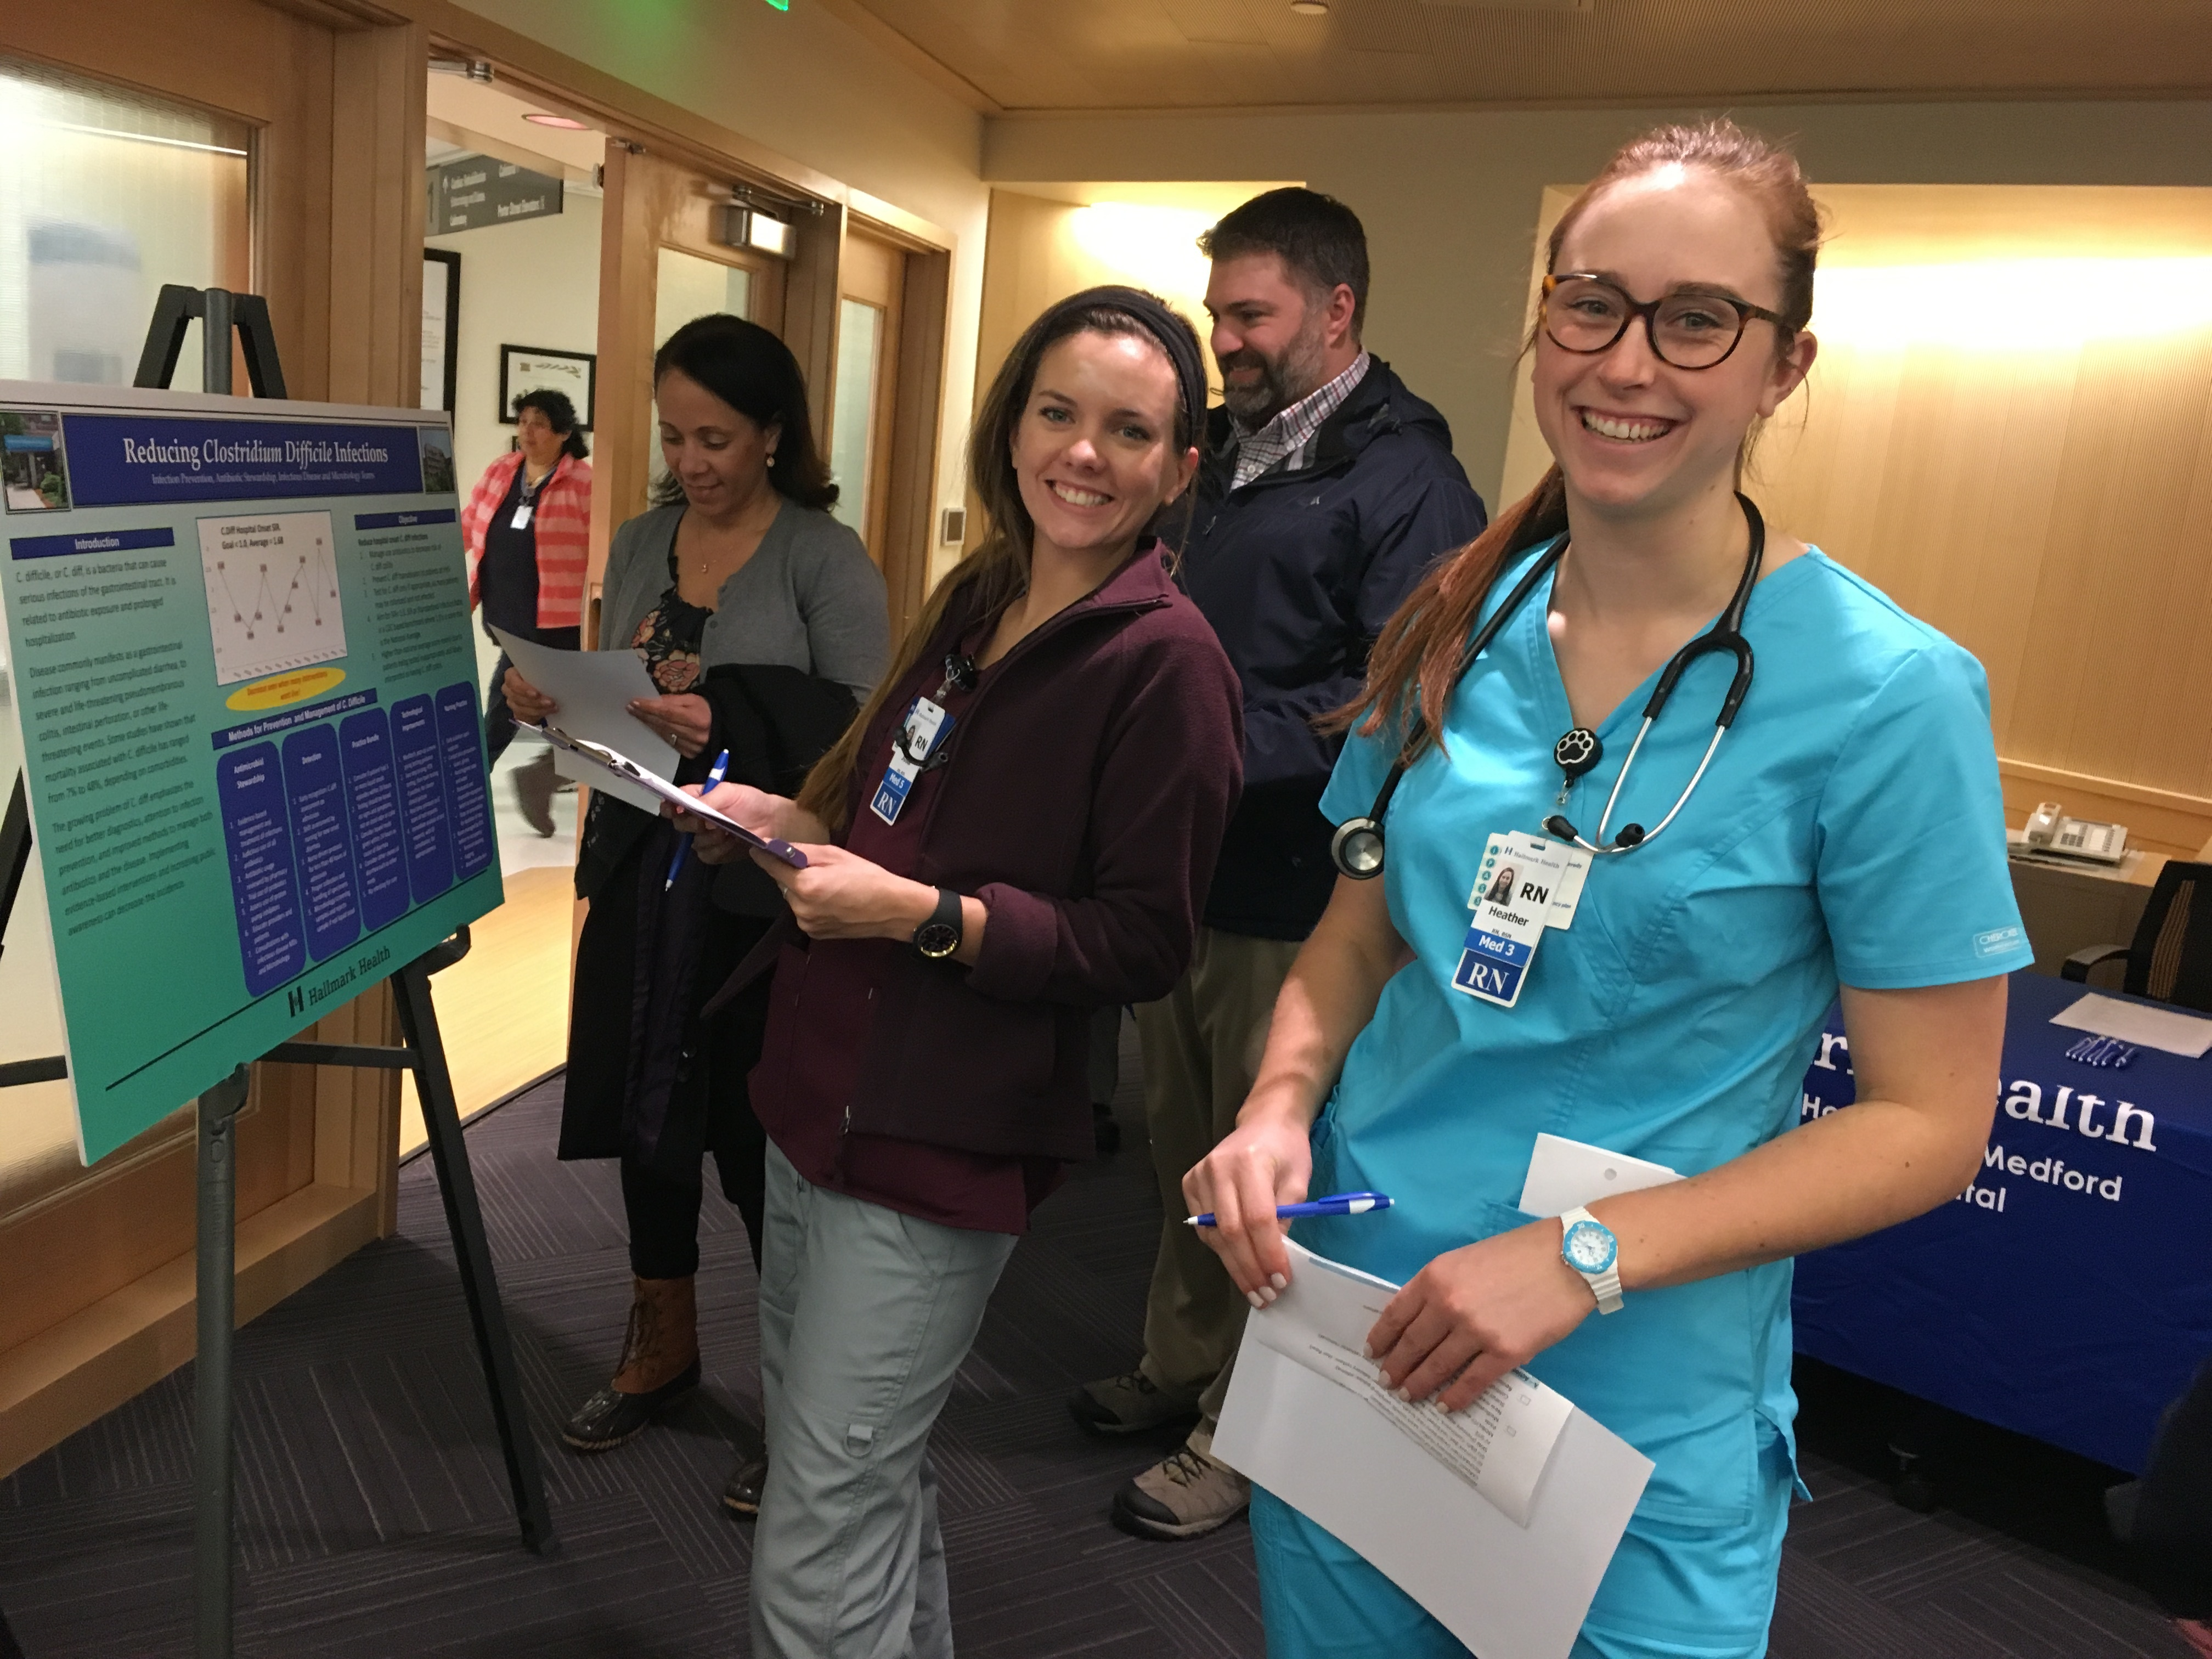 Patient Safety Stars